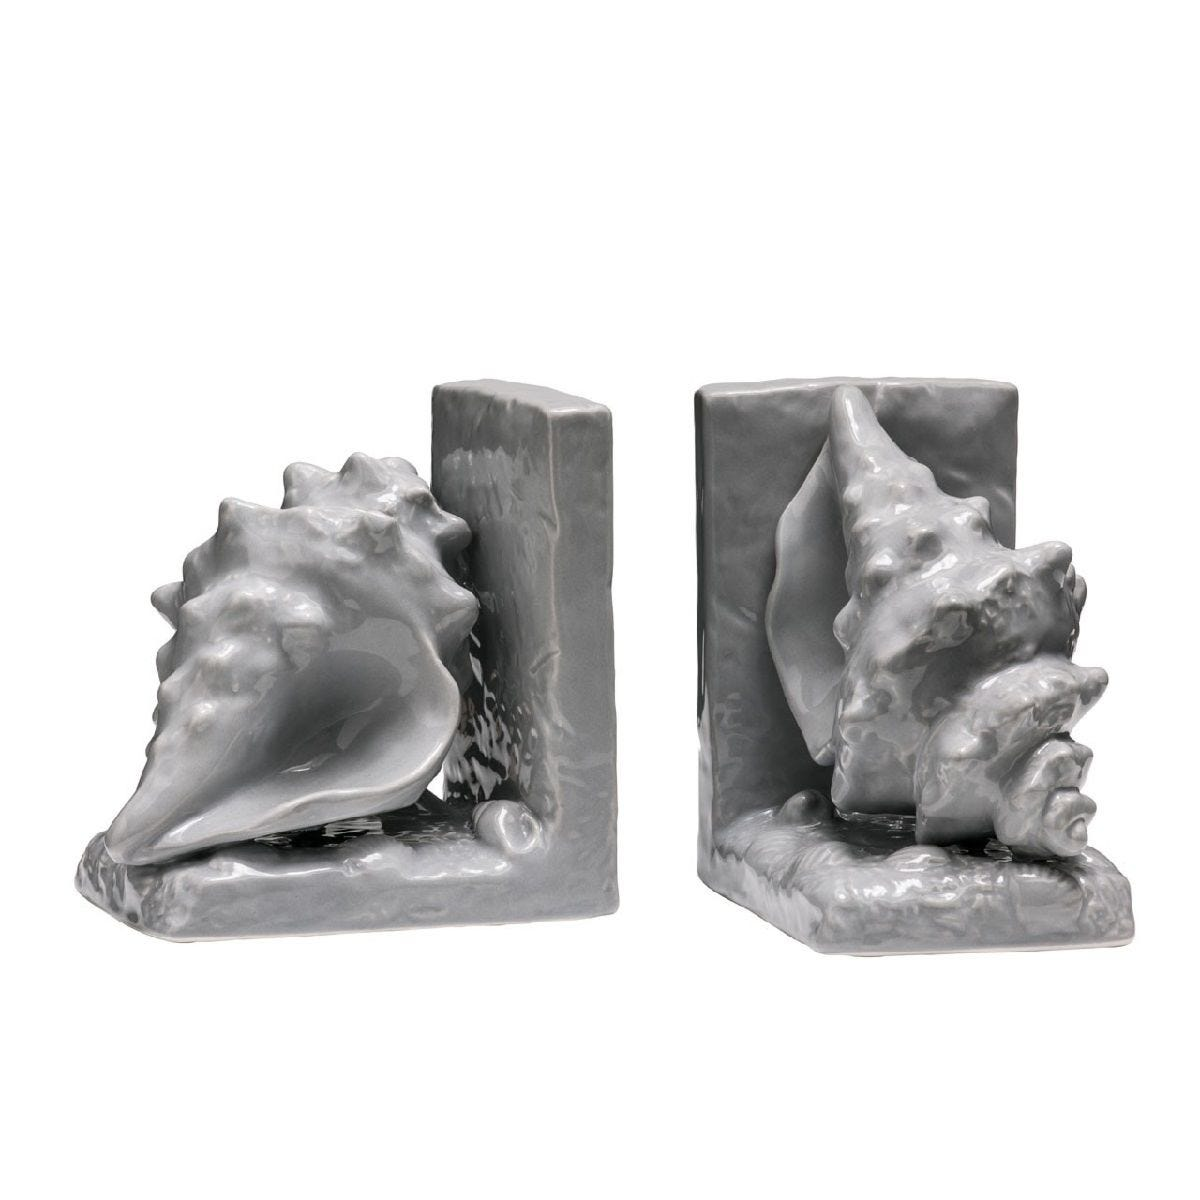 Premier Housewares Conch Set of 2 Bookends - Grey Dolomite